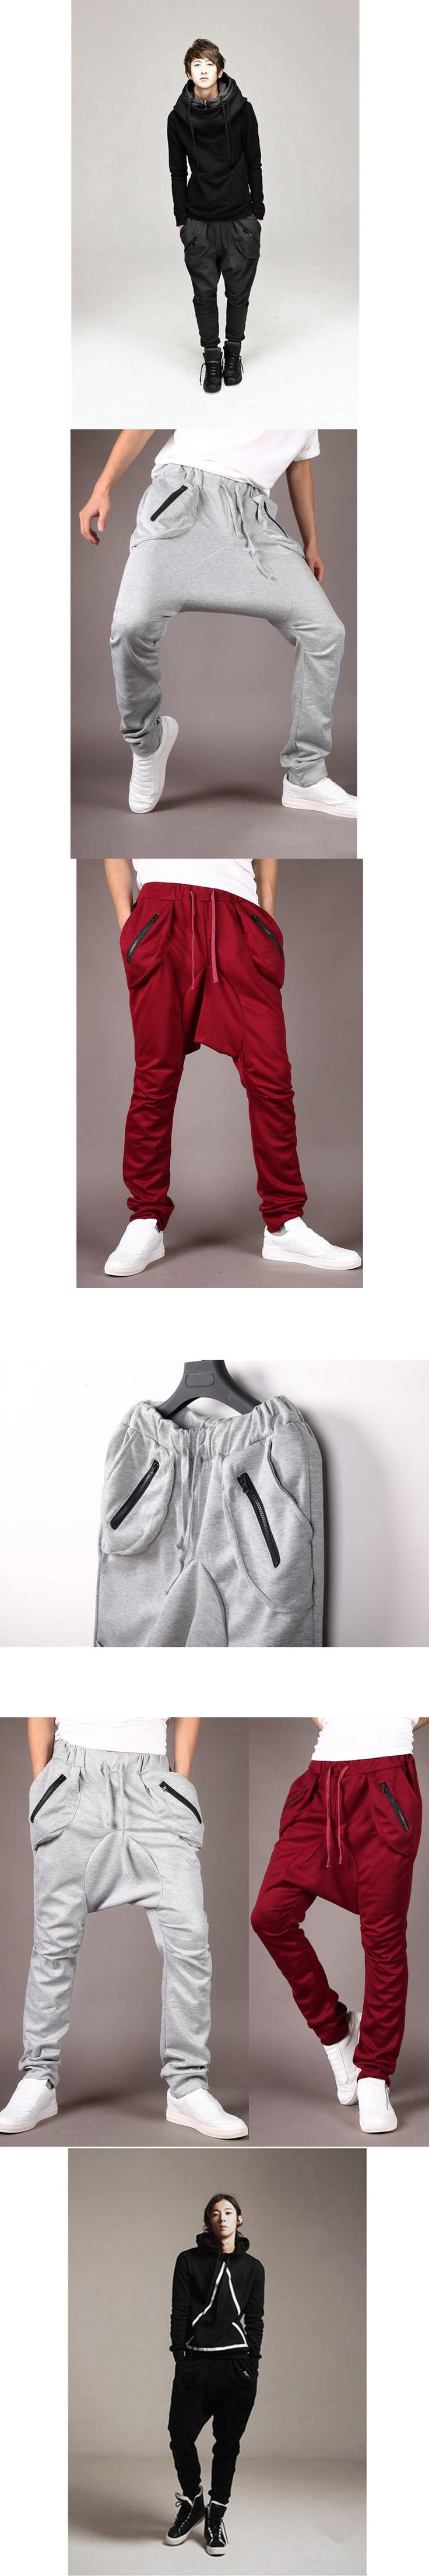 Men's Harem Pants Male Sportswear Solid Color Casual Full Pants Black/Dark Gray/Wine Red Jogger Long Trousers SJ0088